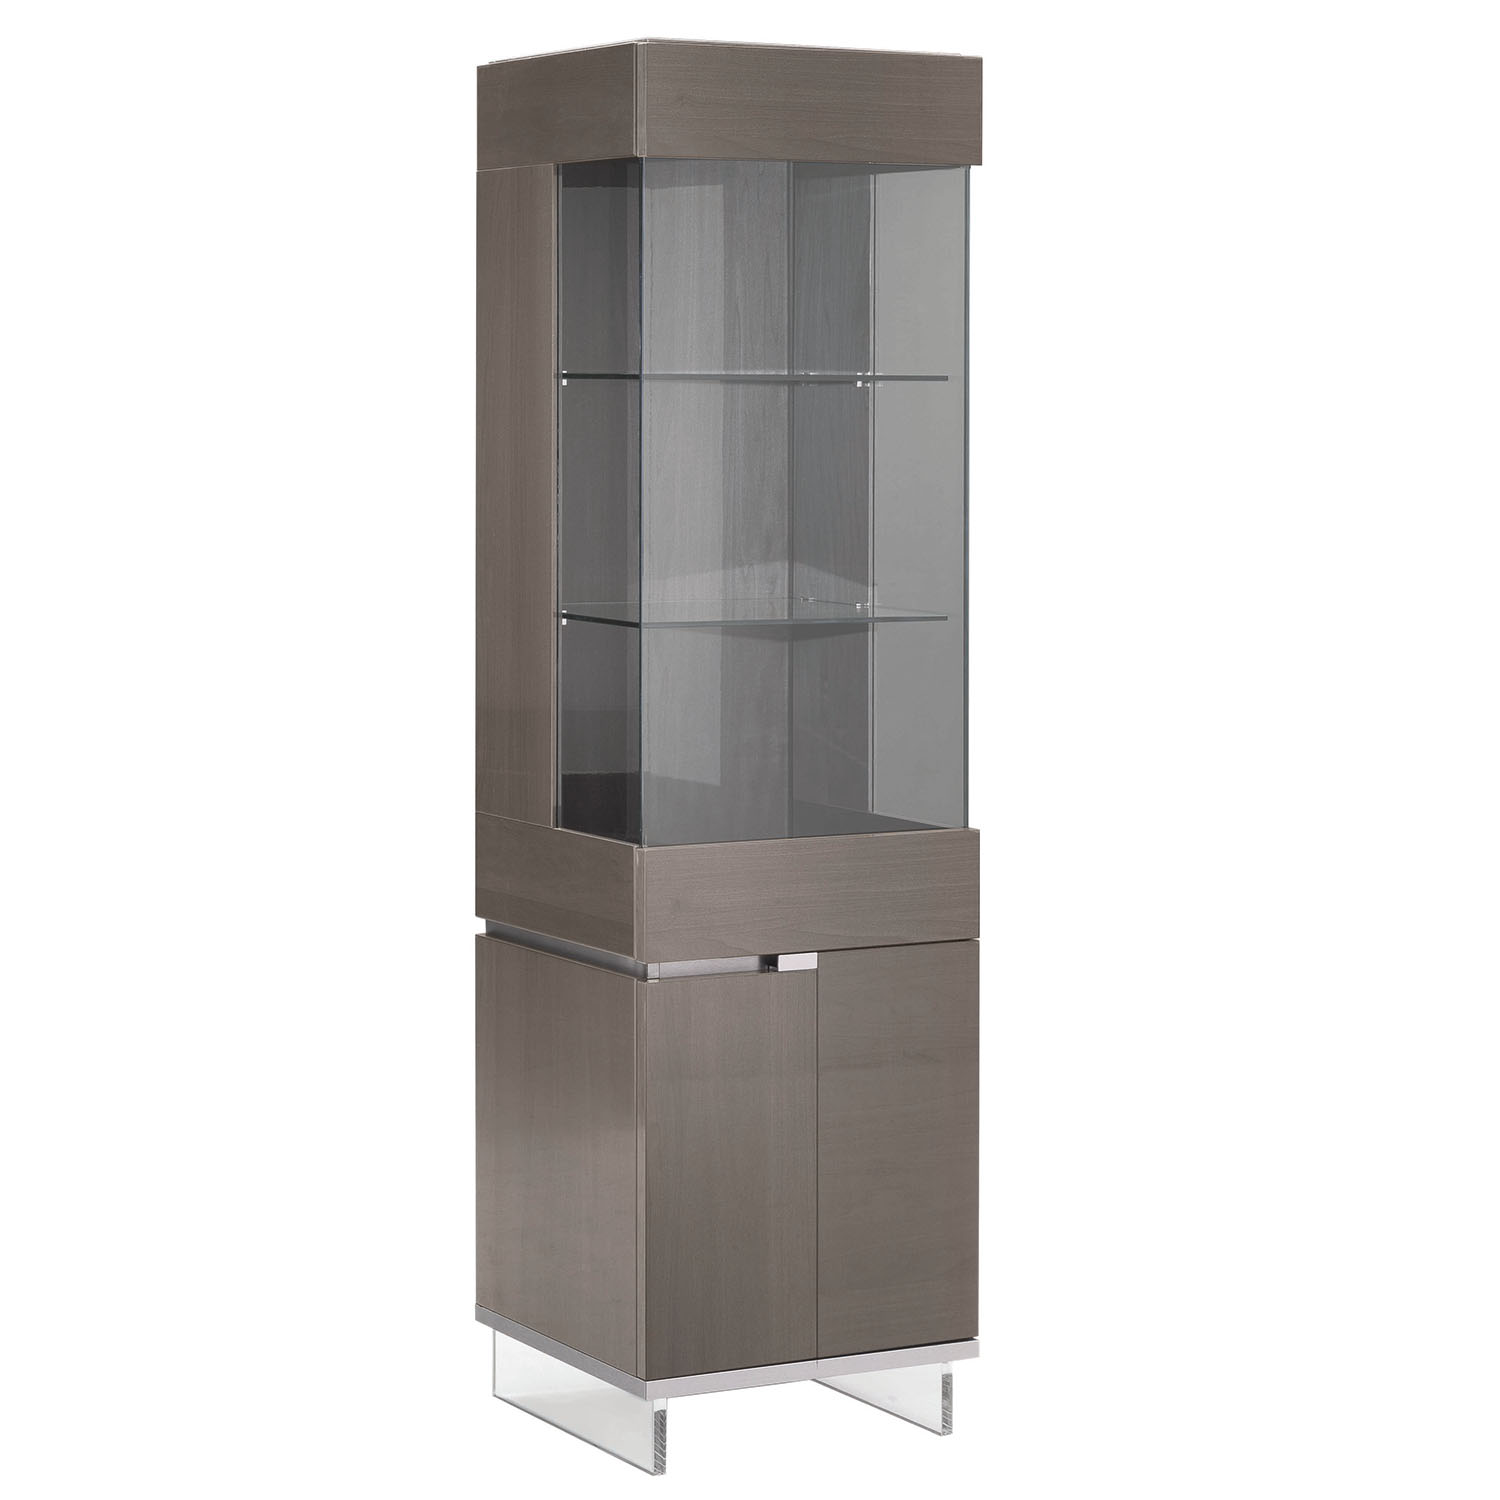 Mercury 1 Door High Gloss Right Curio Display Cabinet